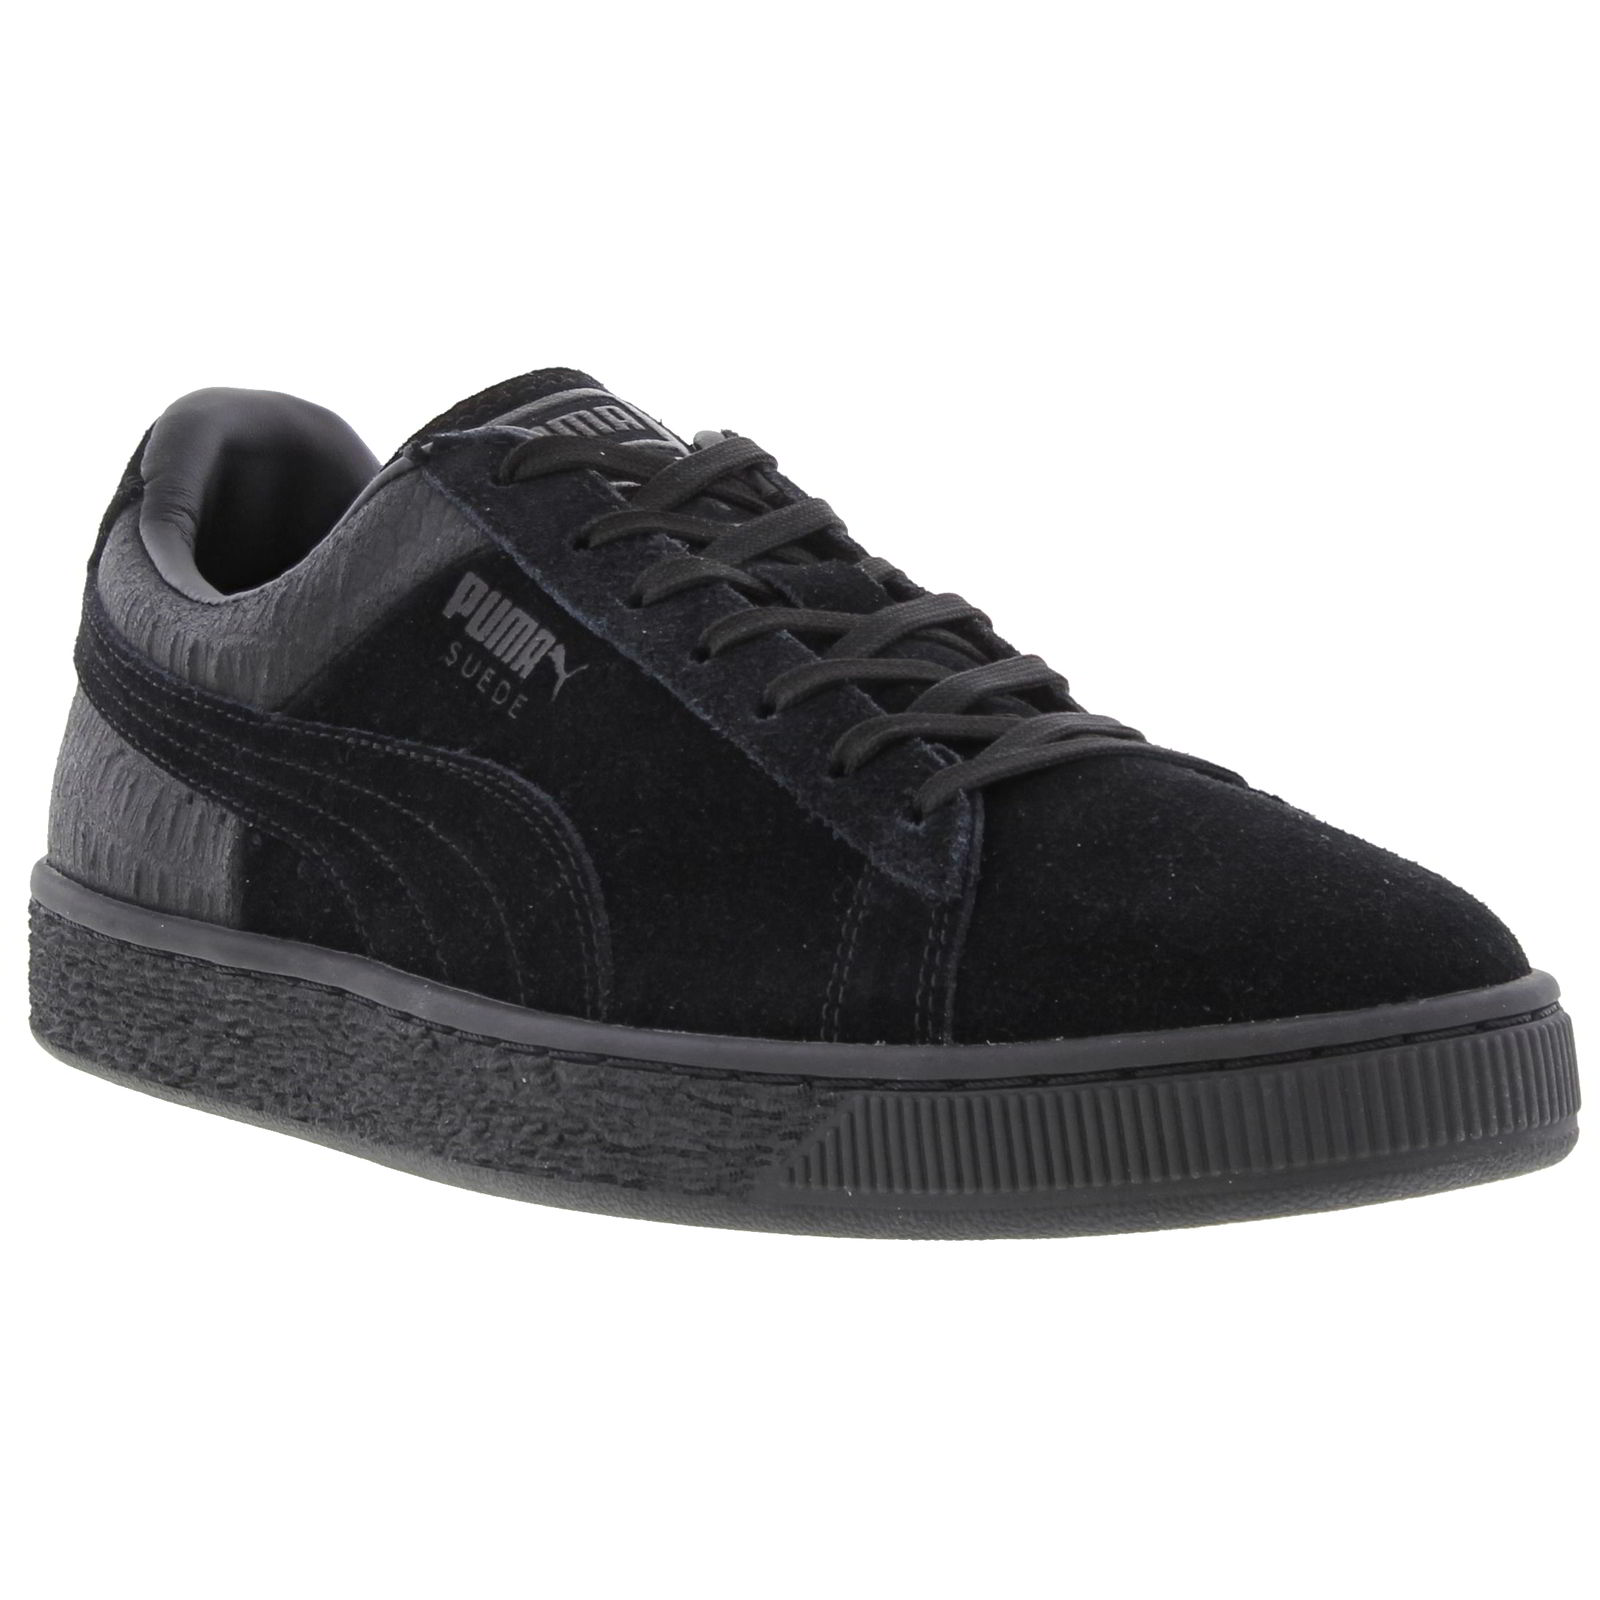 puma suede classic emboss shoes mens black suede leather. Black Bedroom Furniture Sets. Home Design Ideas